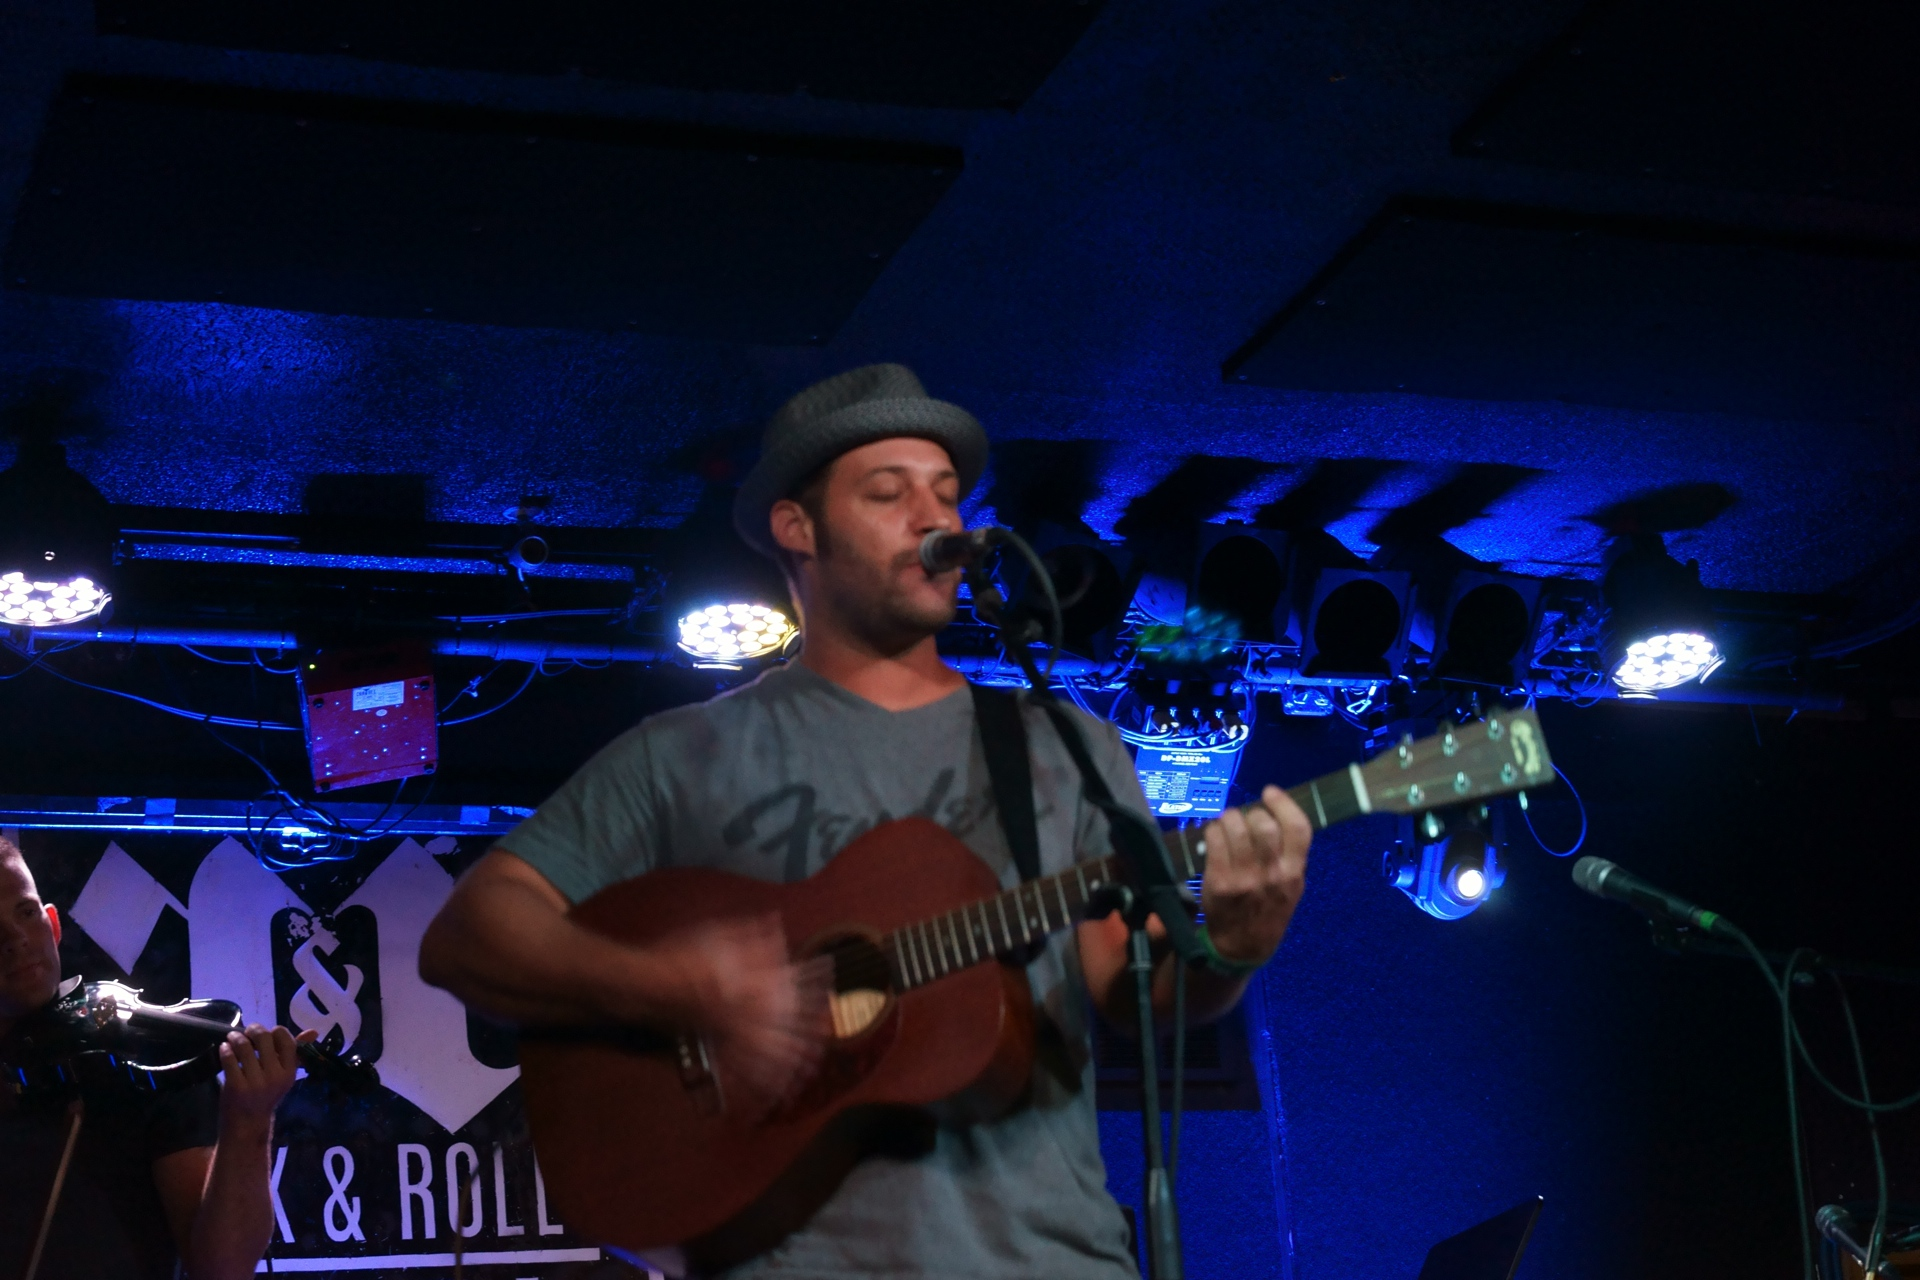 Jason Agery at R&R Hotel